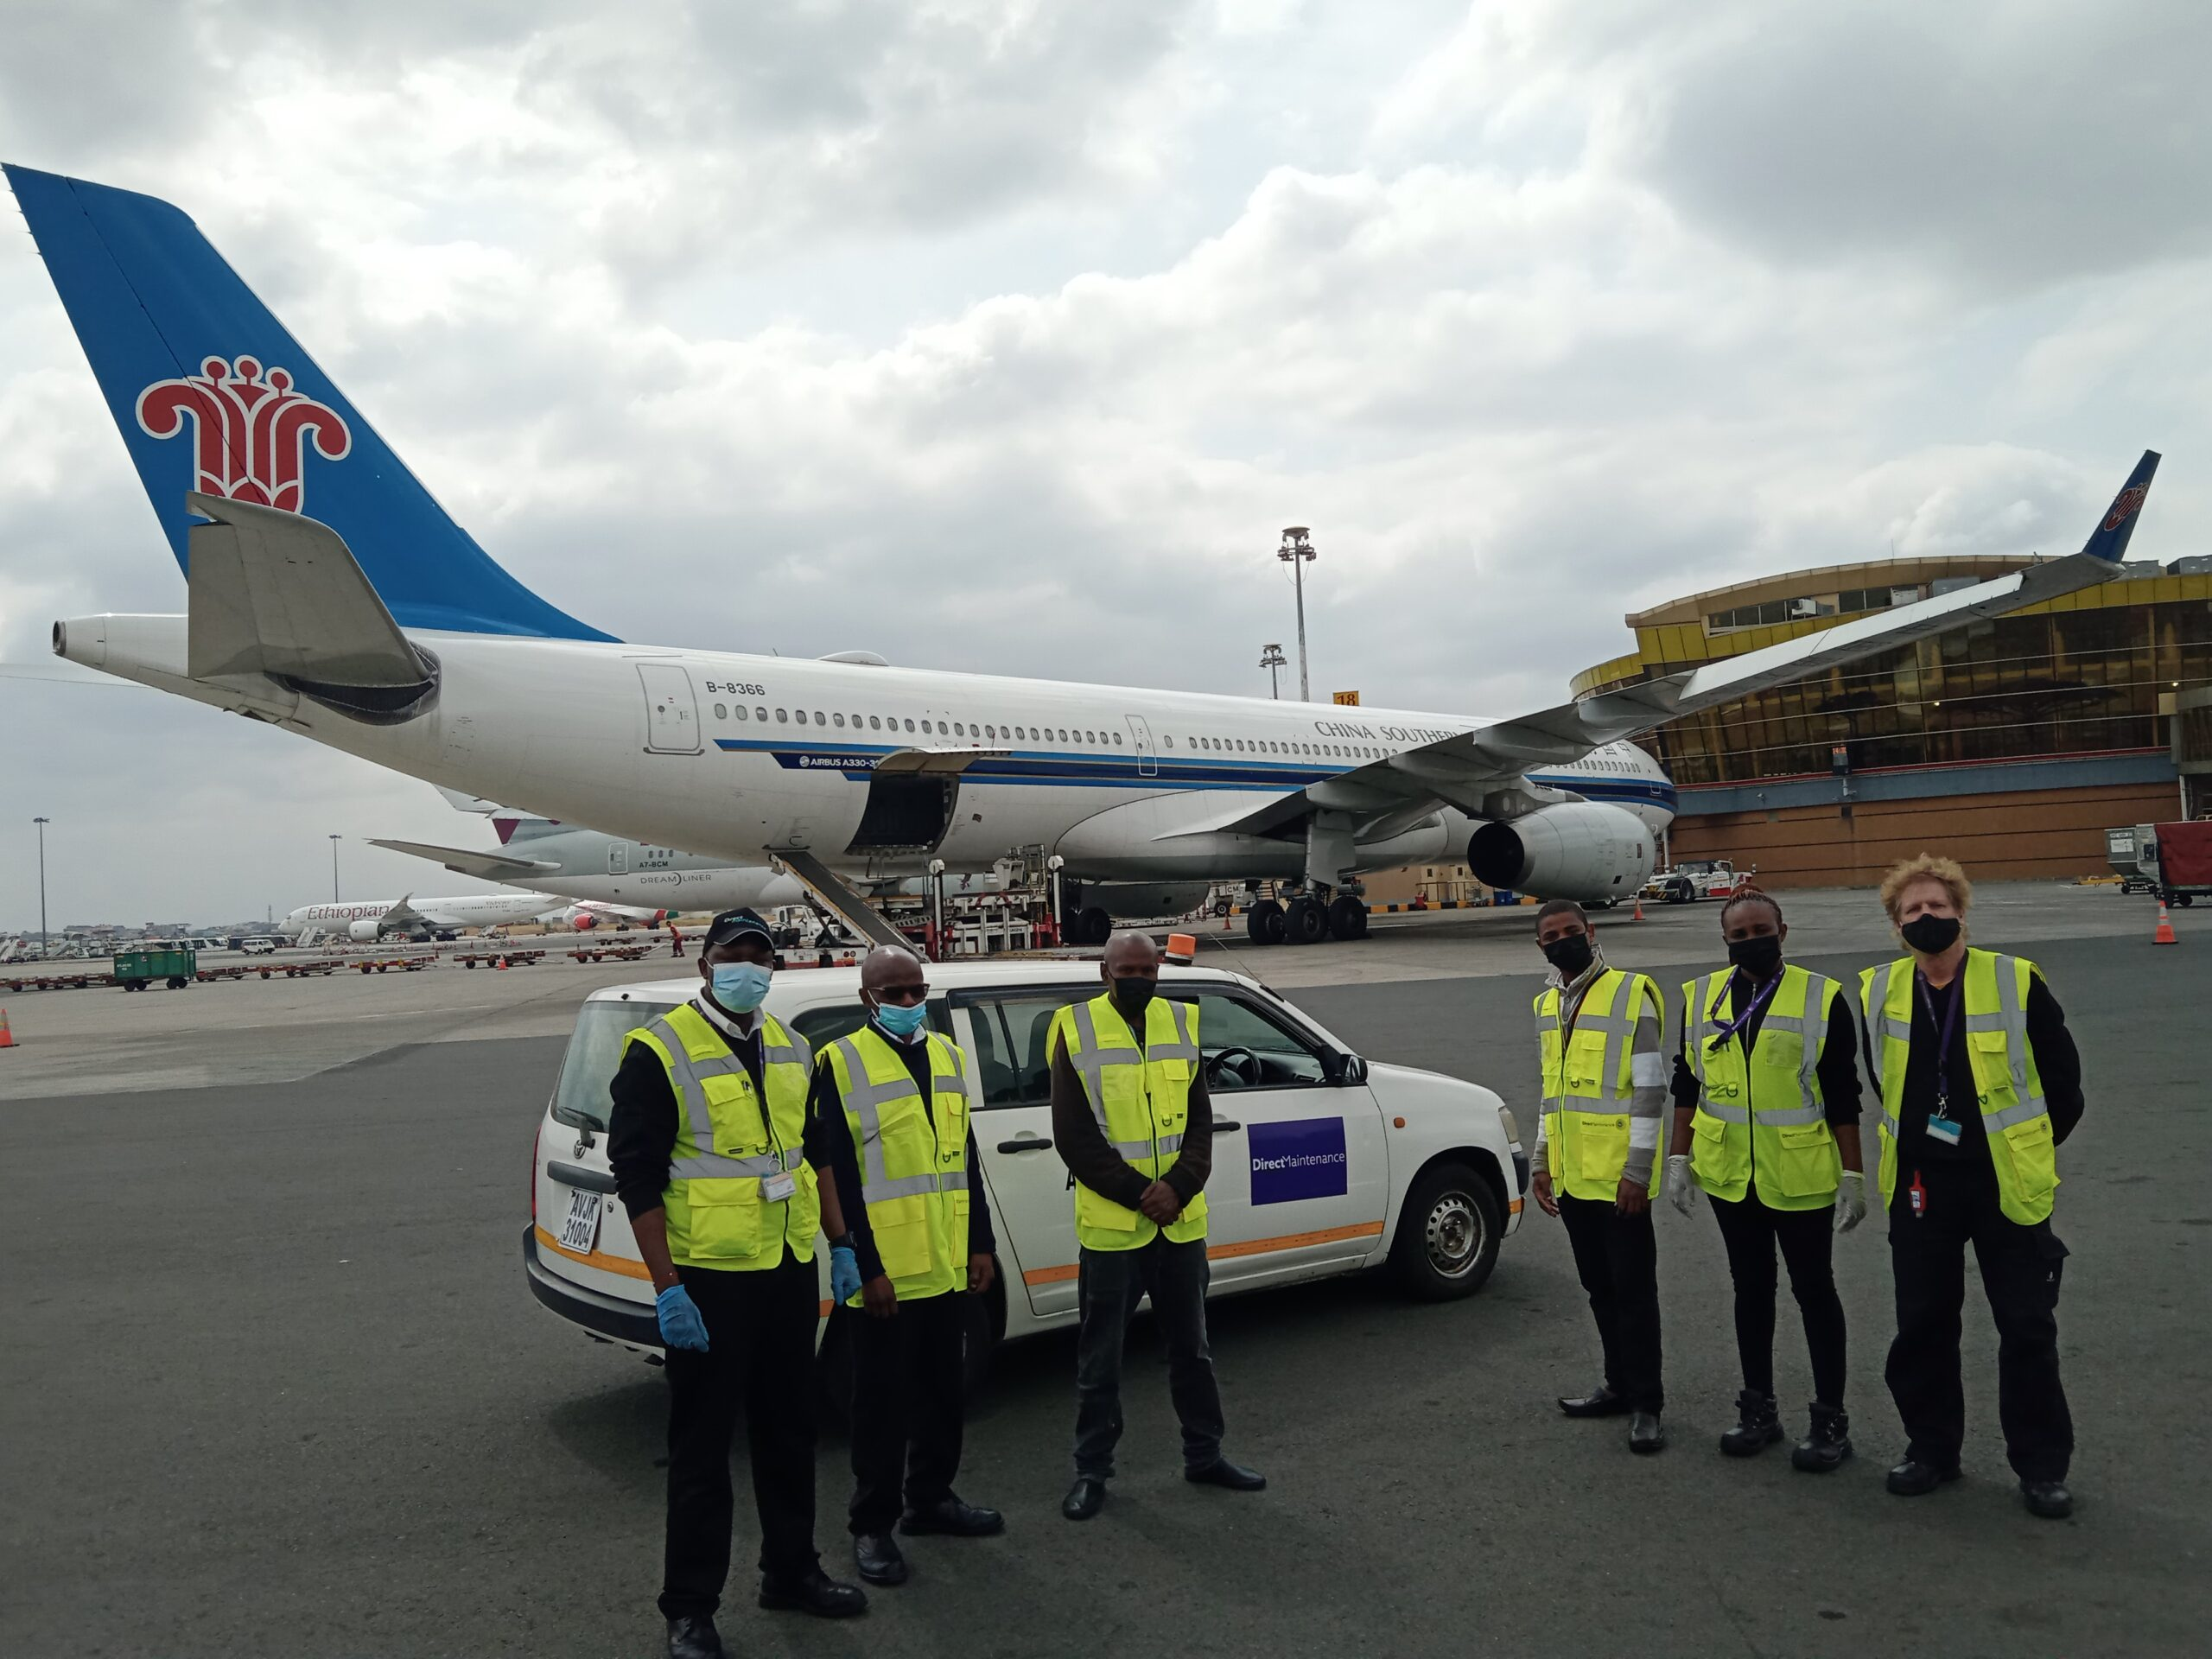 Expanding partnerships: Direct Maintenance providing line maintenance services for China Southern Airlines in Africa